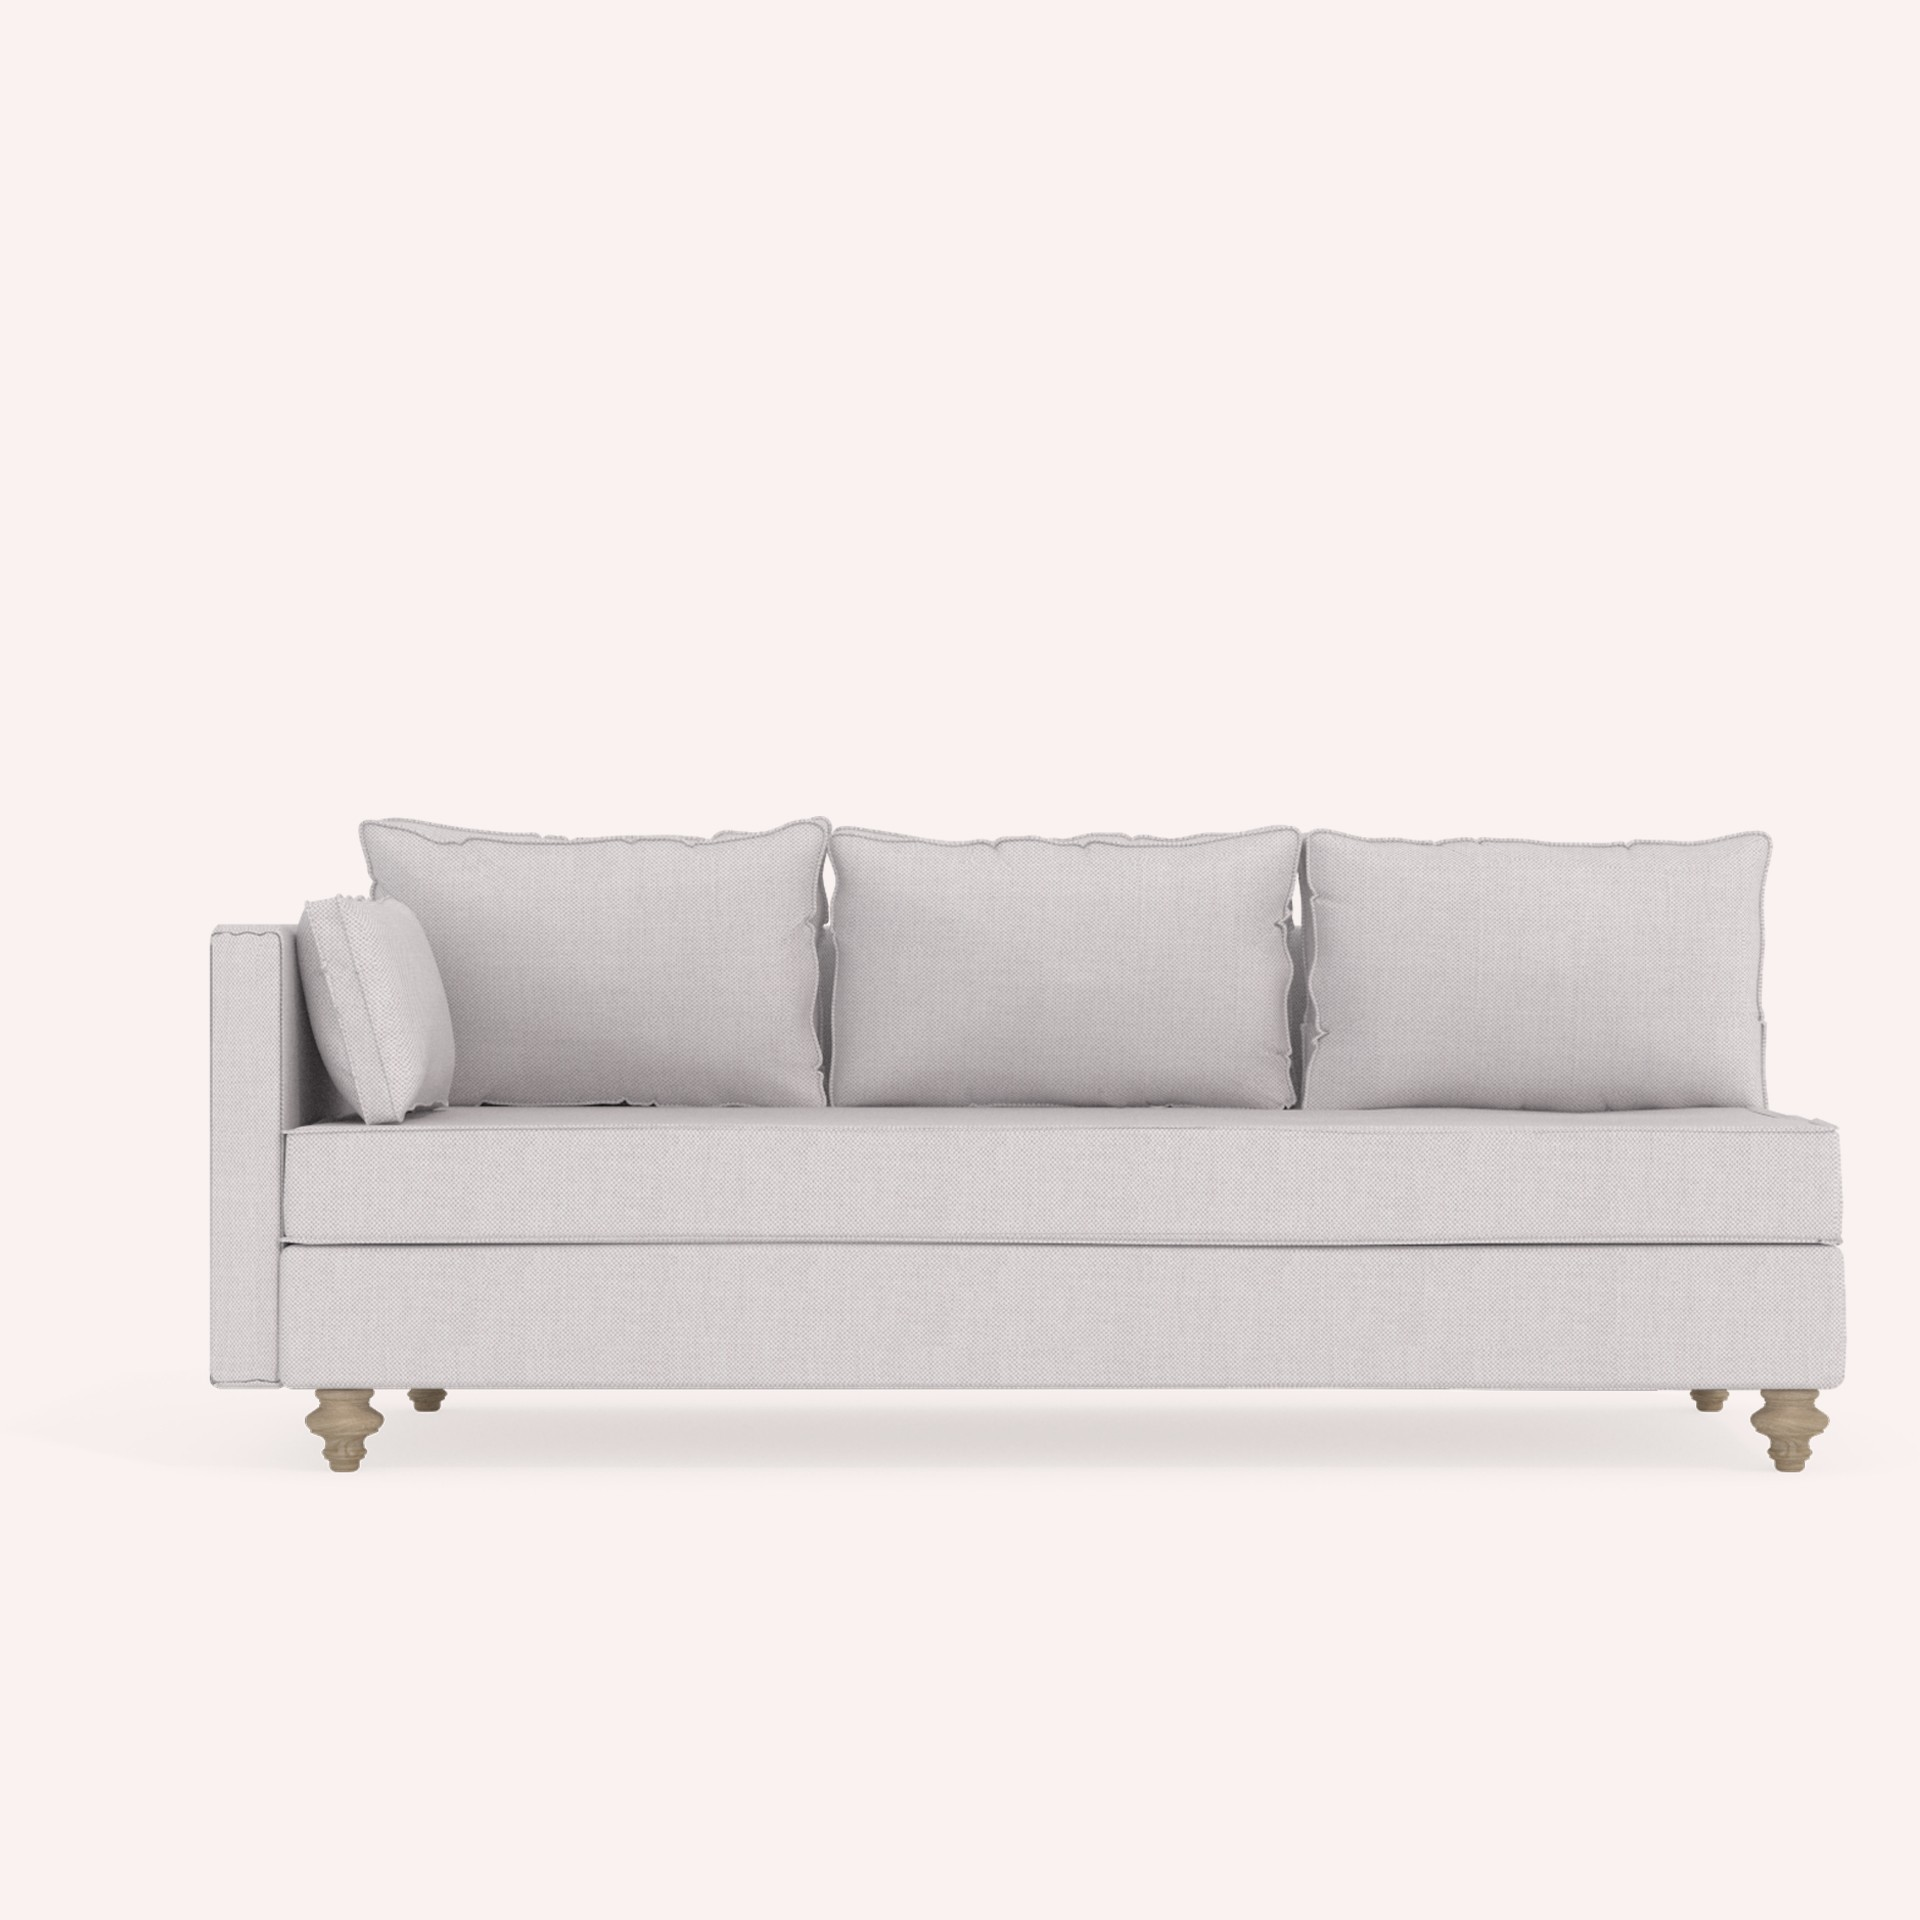 Prime 3 Seat Sofa Myrsini With One Arm Coco Mat Theyellowbook Wood Chair Design Ideas Theyellowbookinfo